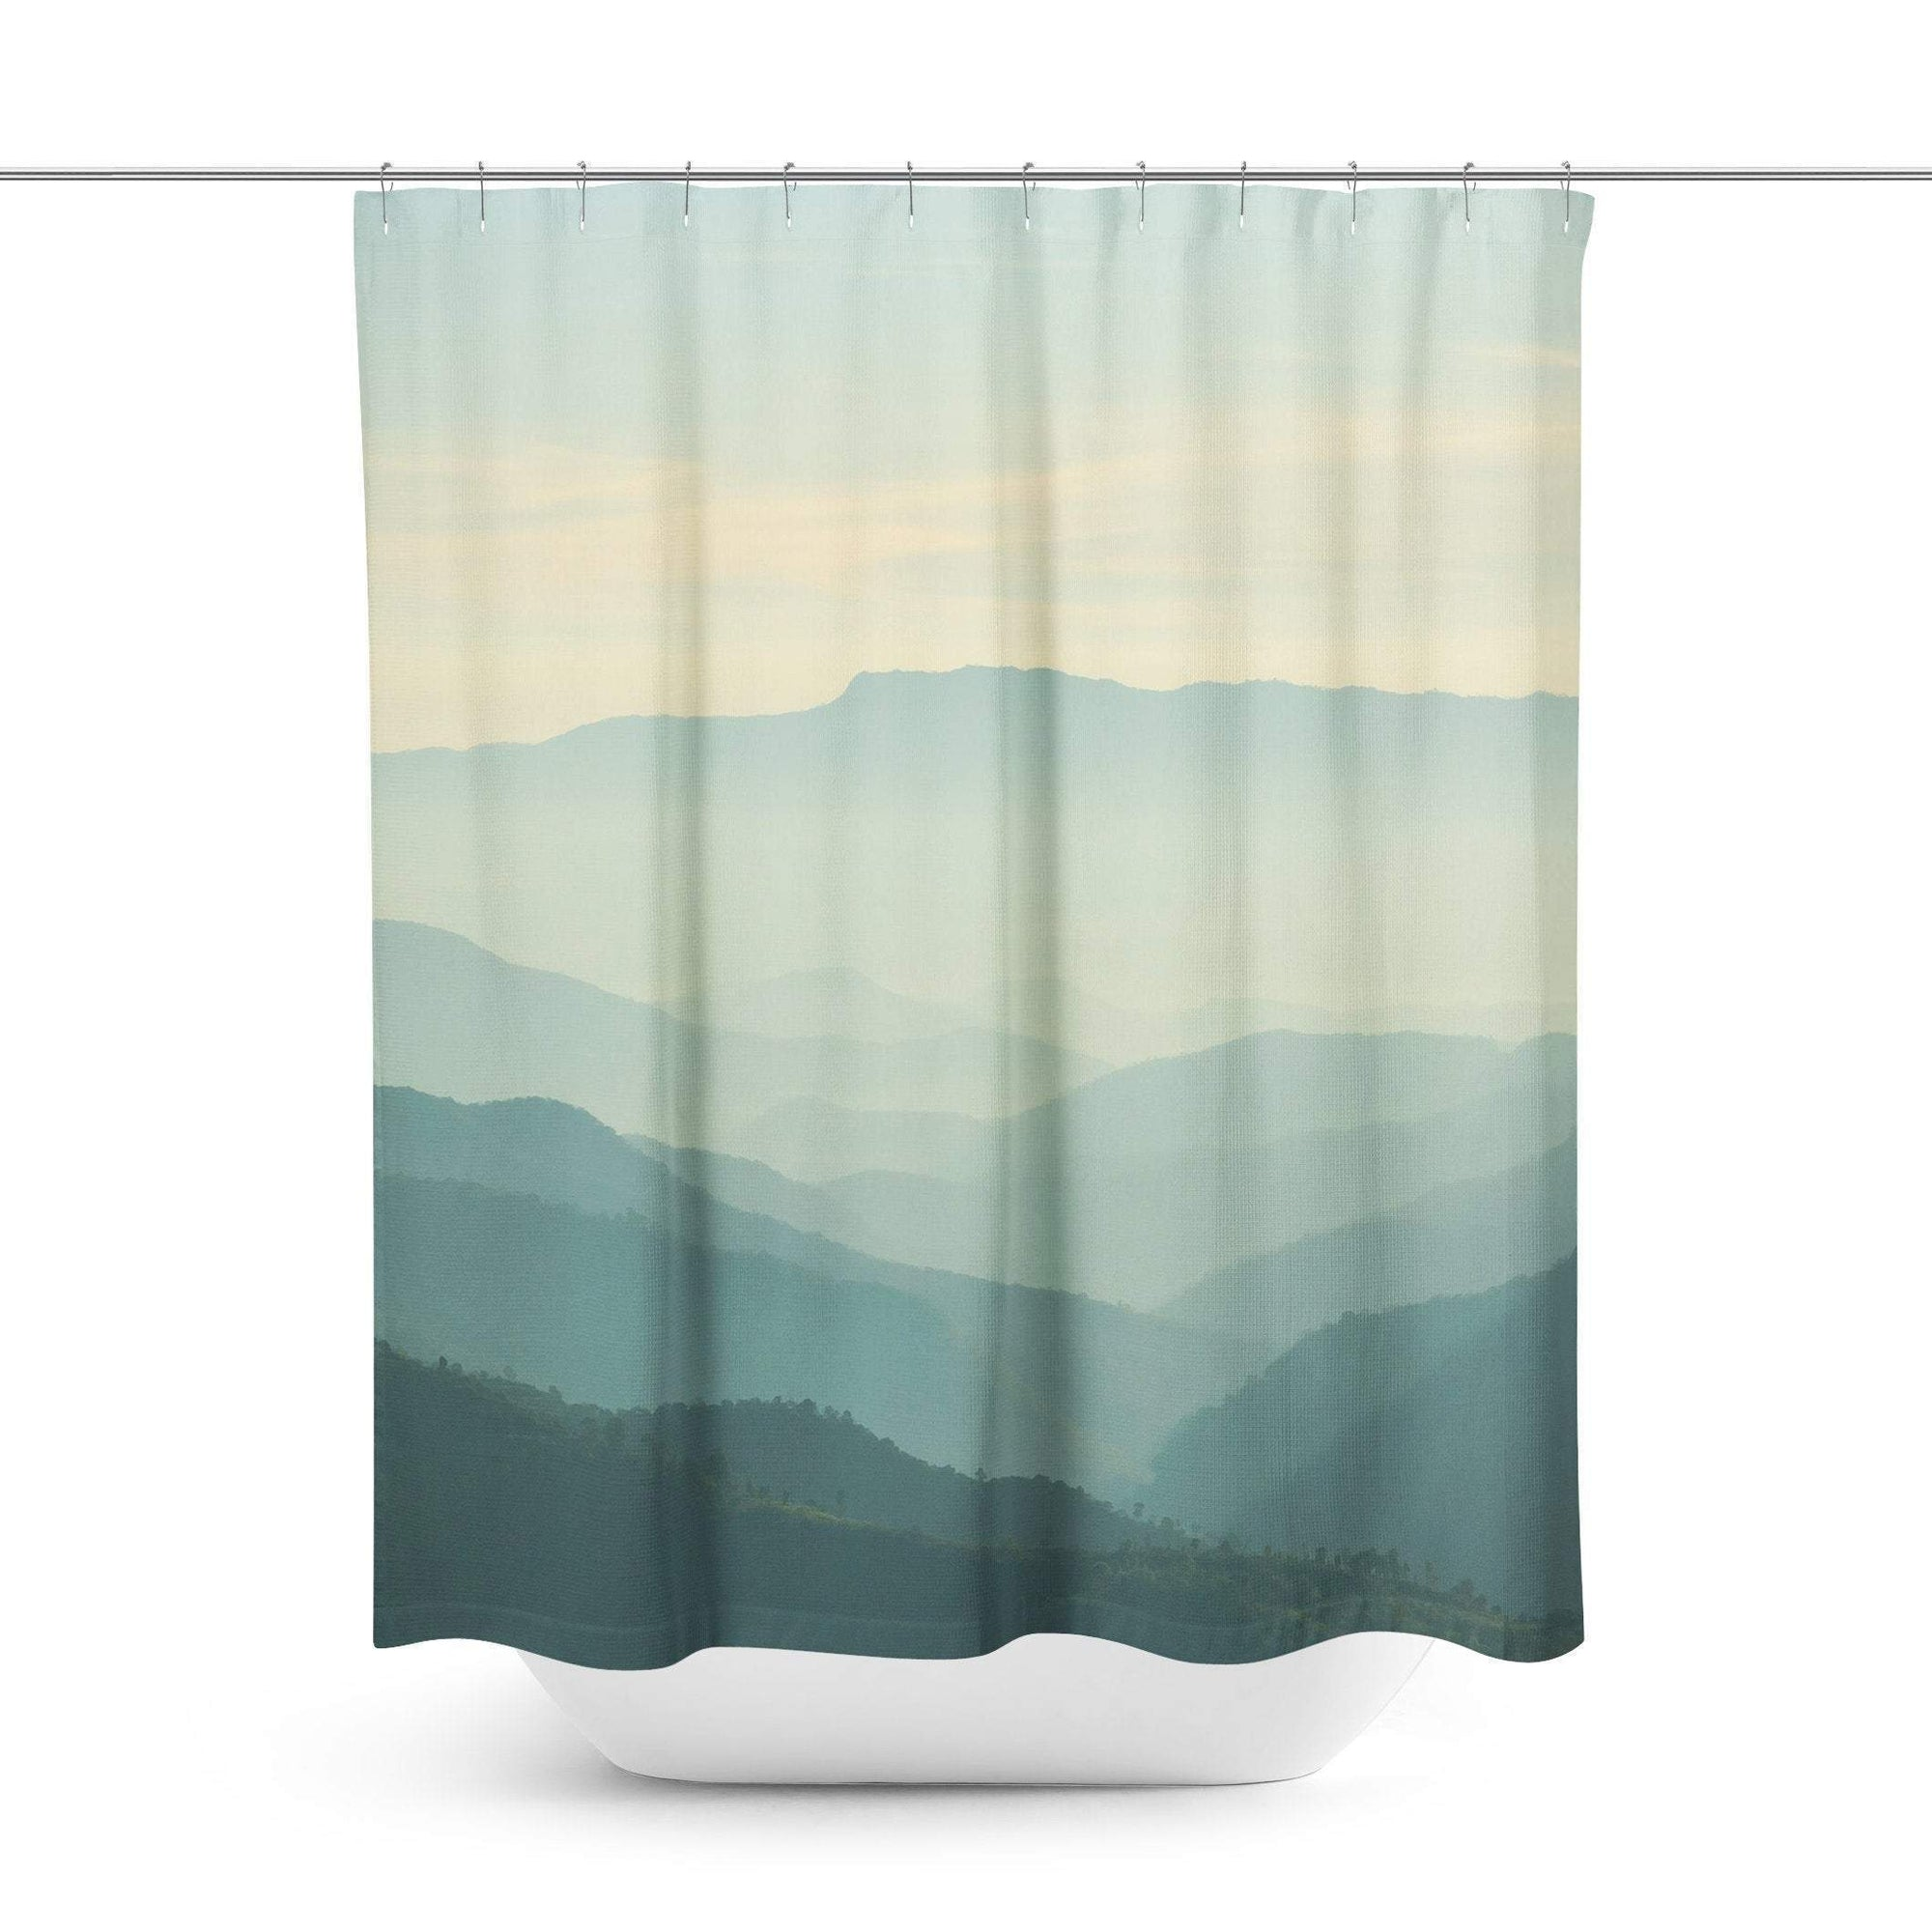 Green Mountain Scenic Shower Curtain - Shower Curtains - W.FRANCIS